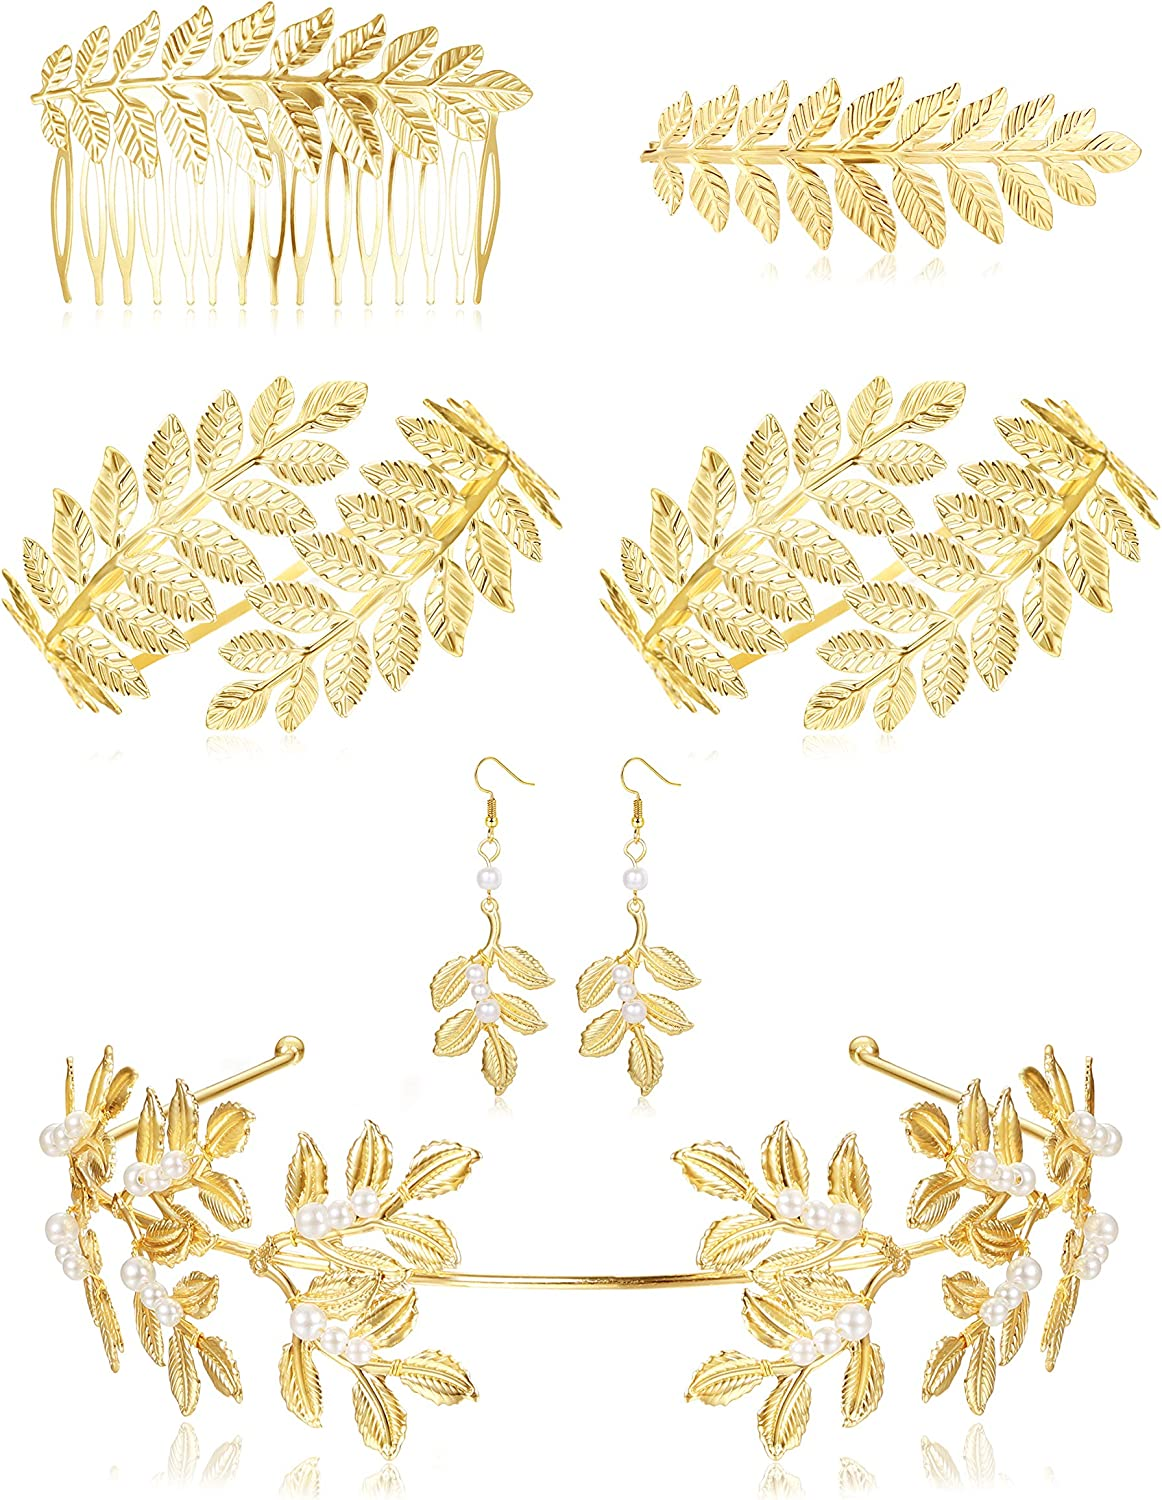 ORAZIO 6Pcs Grecian Goddess Costume Accessories Set Greek Leaf Headband Coil Bracelet Artificial Pearl Earrings Golden Leaves Bridal Hair Comb for Women Wedding Party